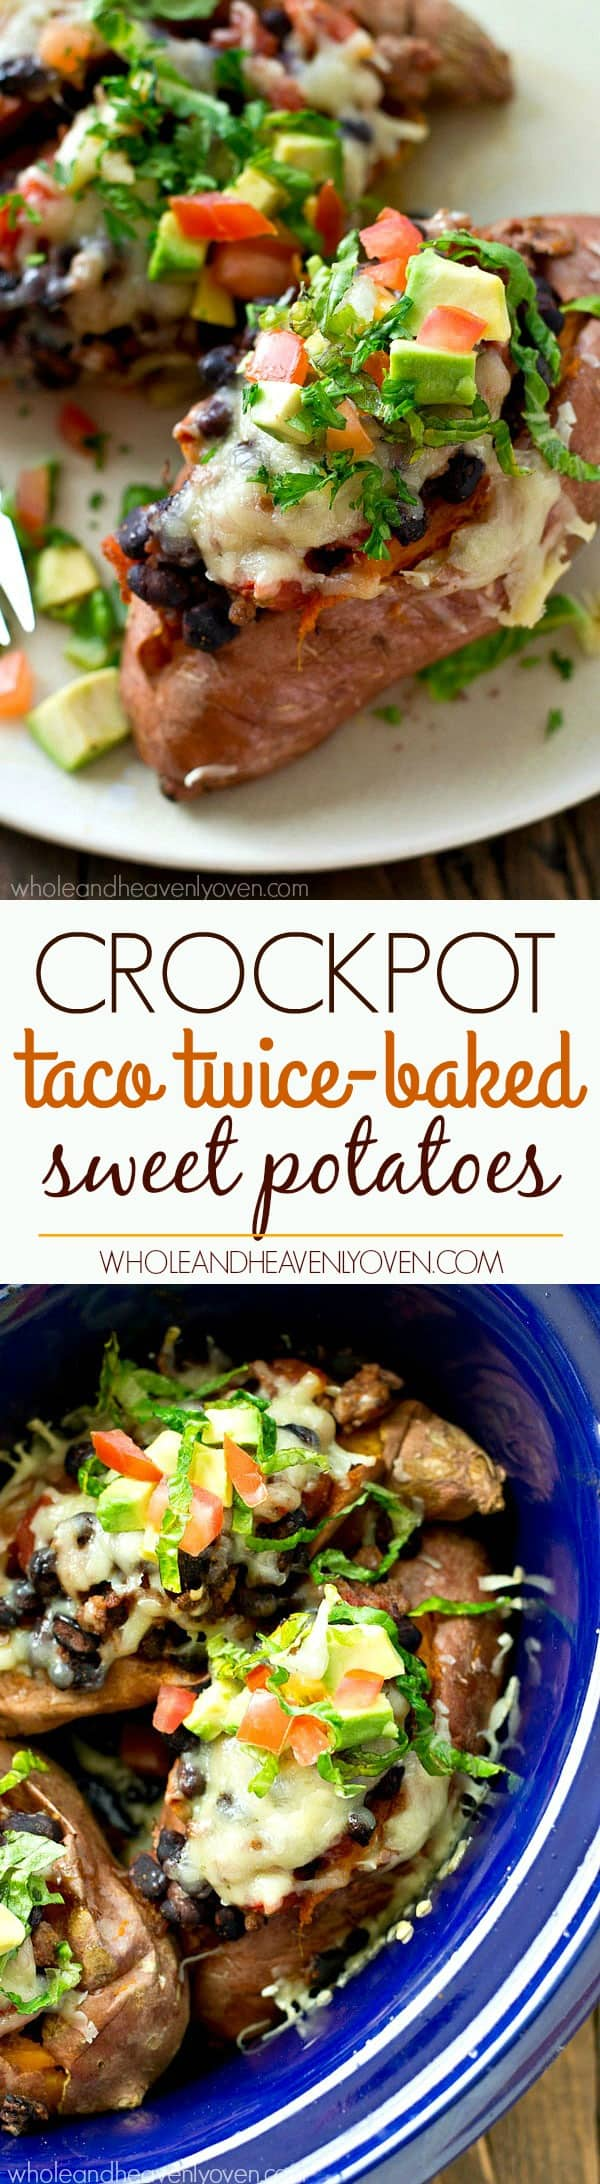 Stuffed with all your favorite taco fillings and made completely in the crockpot, these twice-baked sweet potatoes will quickly become an easy weeknight dinner regular!